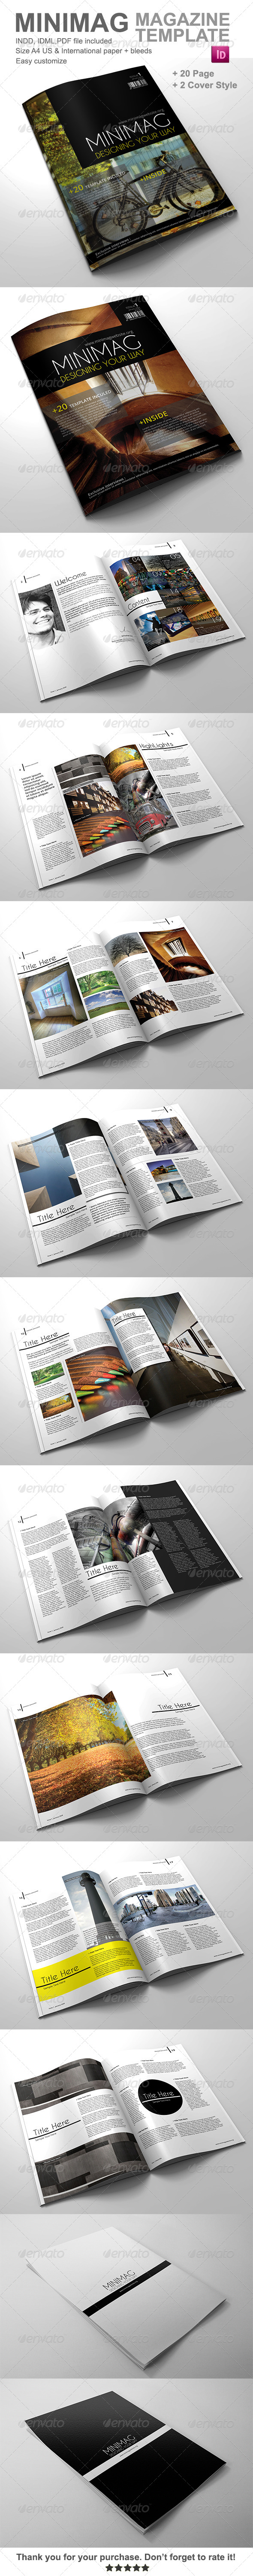 GraphicRiver Gstudio Minimag Magazine Template 4298353